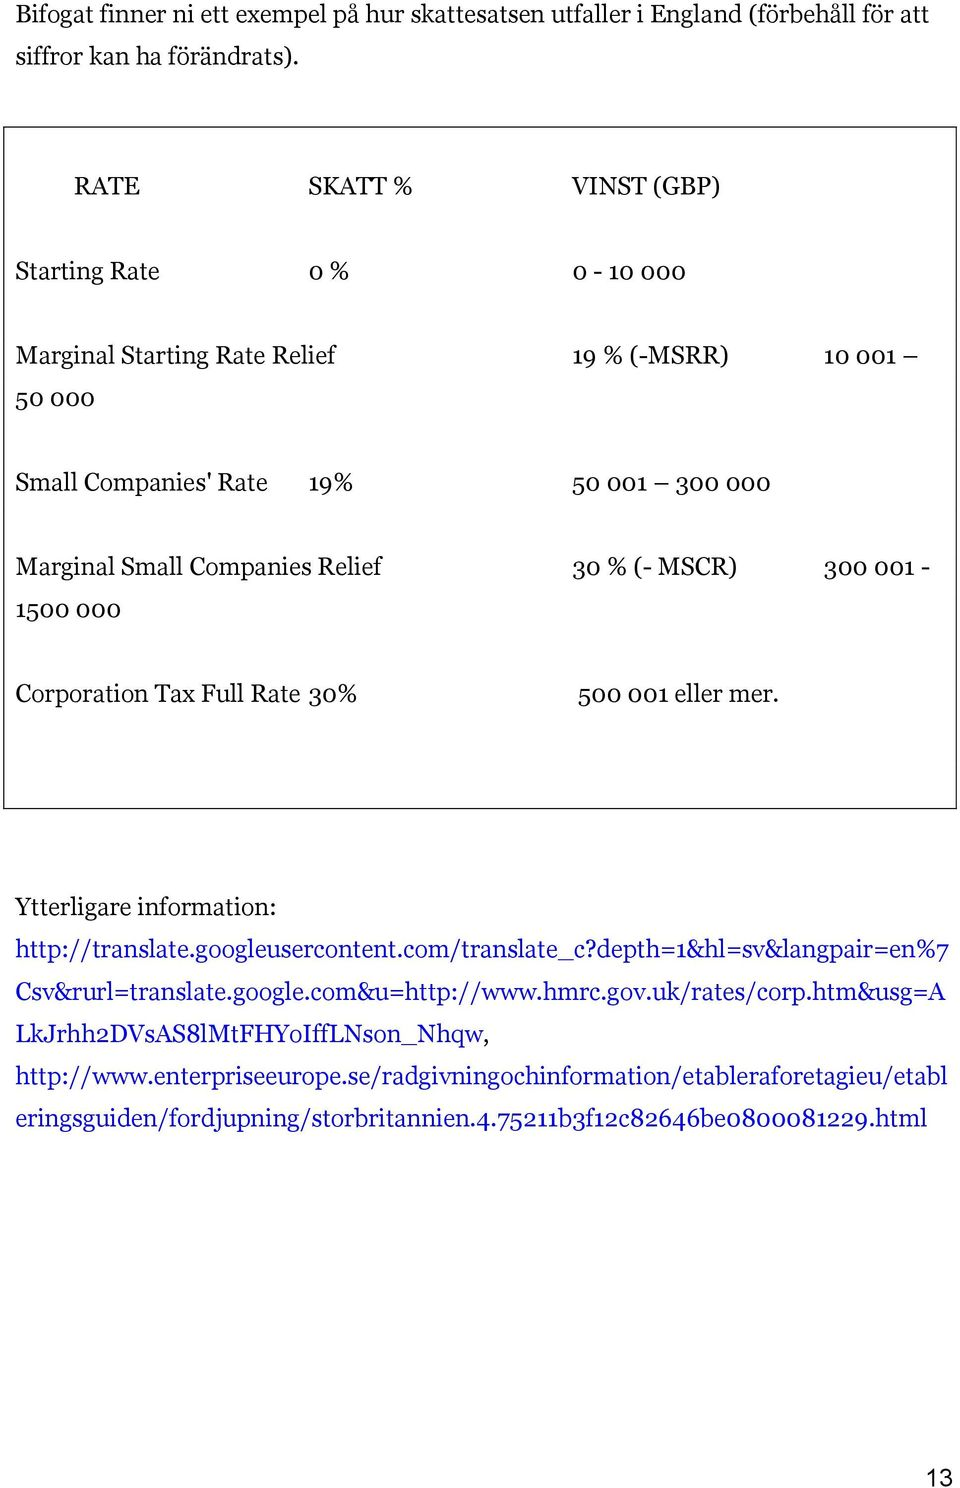 (- MSCR) 300 001-1500 000 Corporation Tax Full Rate 30% 500 001 eller mer. Ytterligare information: http://translate.googleusercontent.com/translate_c?